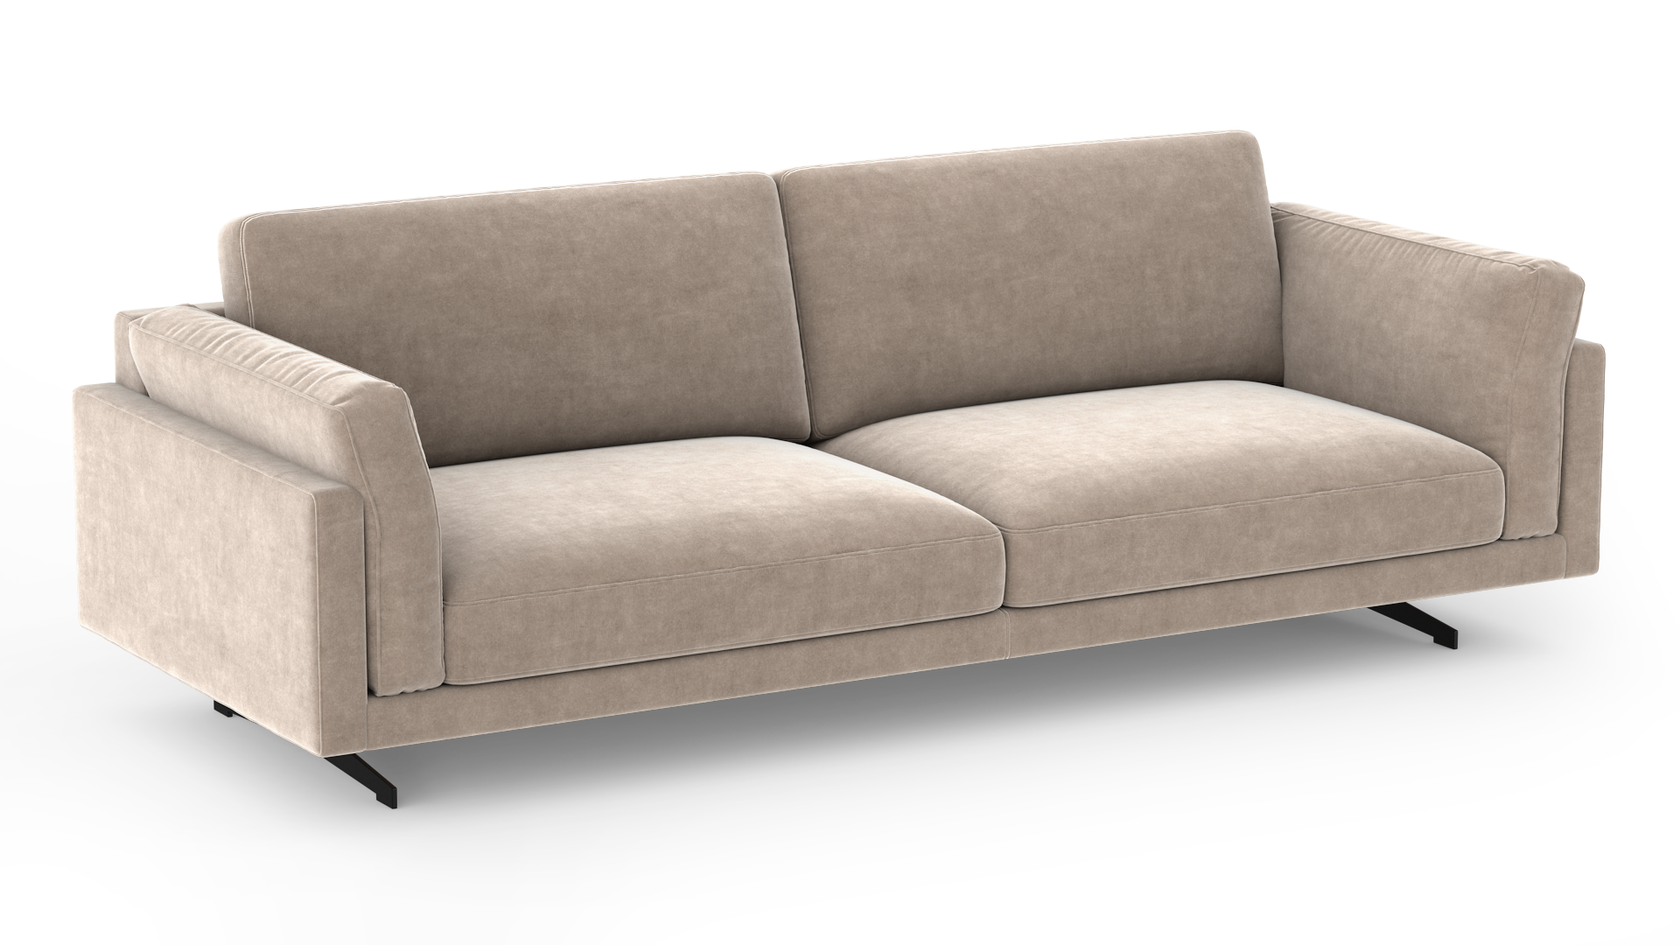 2090852-AMPM-SOFA_CAESAR-DOVE_GRAY_4_PL.